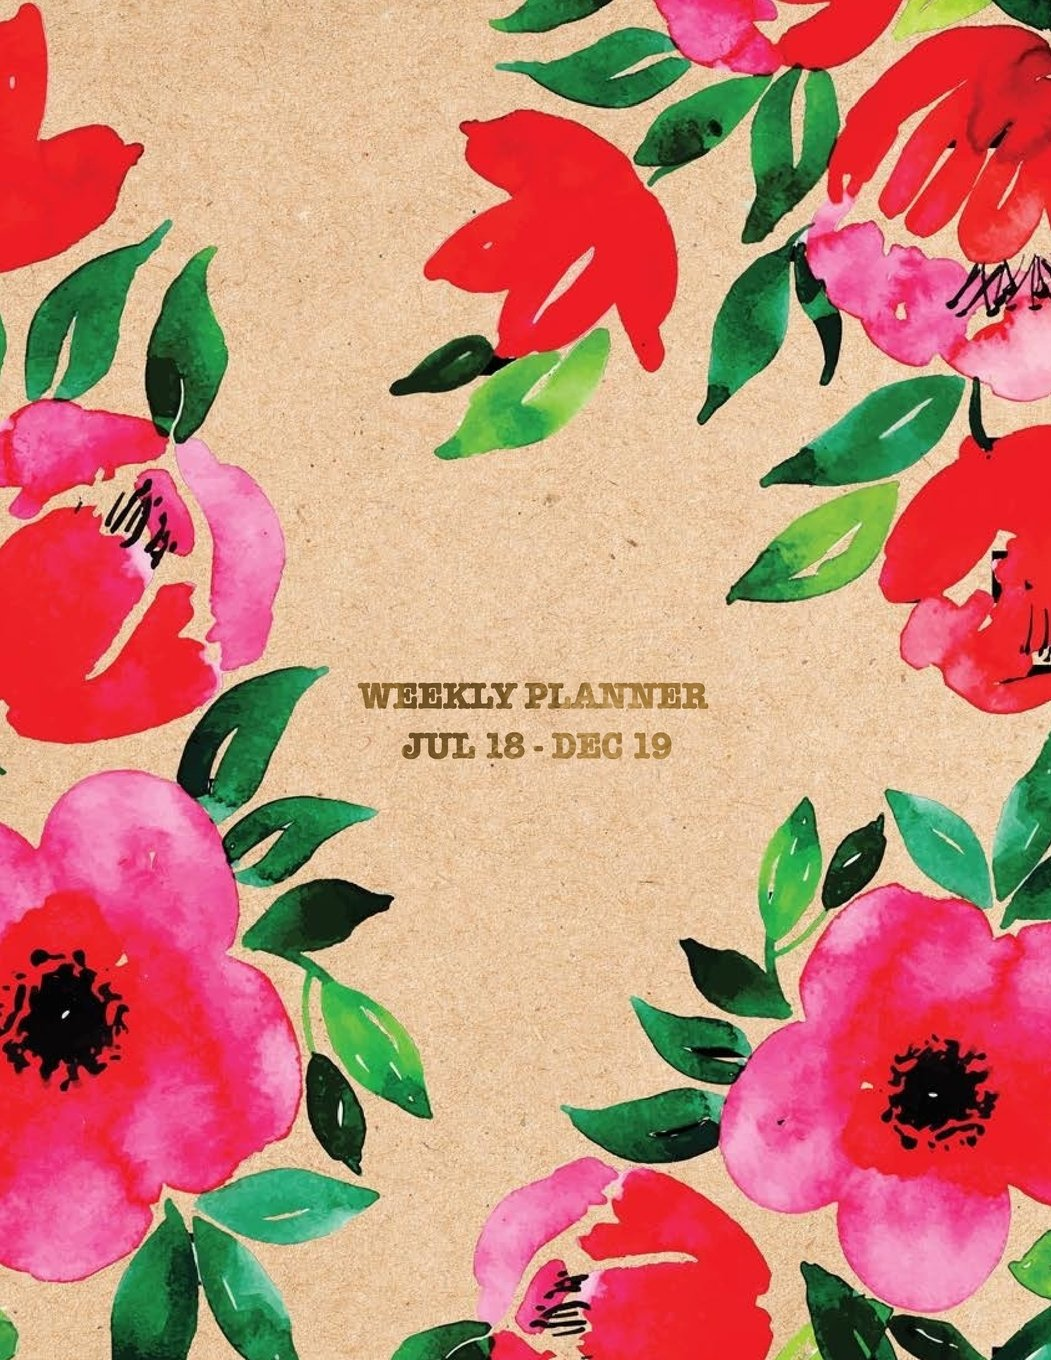 Read Online Weekly Planner Jul 18 - Dec 19: Watercolour Floral 2018-2019 Planner  18-Month Weekly View Planner  To-Do Lists + Motivational Quotes  Jul 18-Dec 19 (Week-by-week Planner) (Volume 1) pdf epub